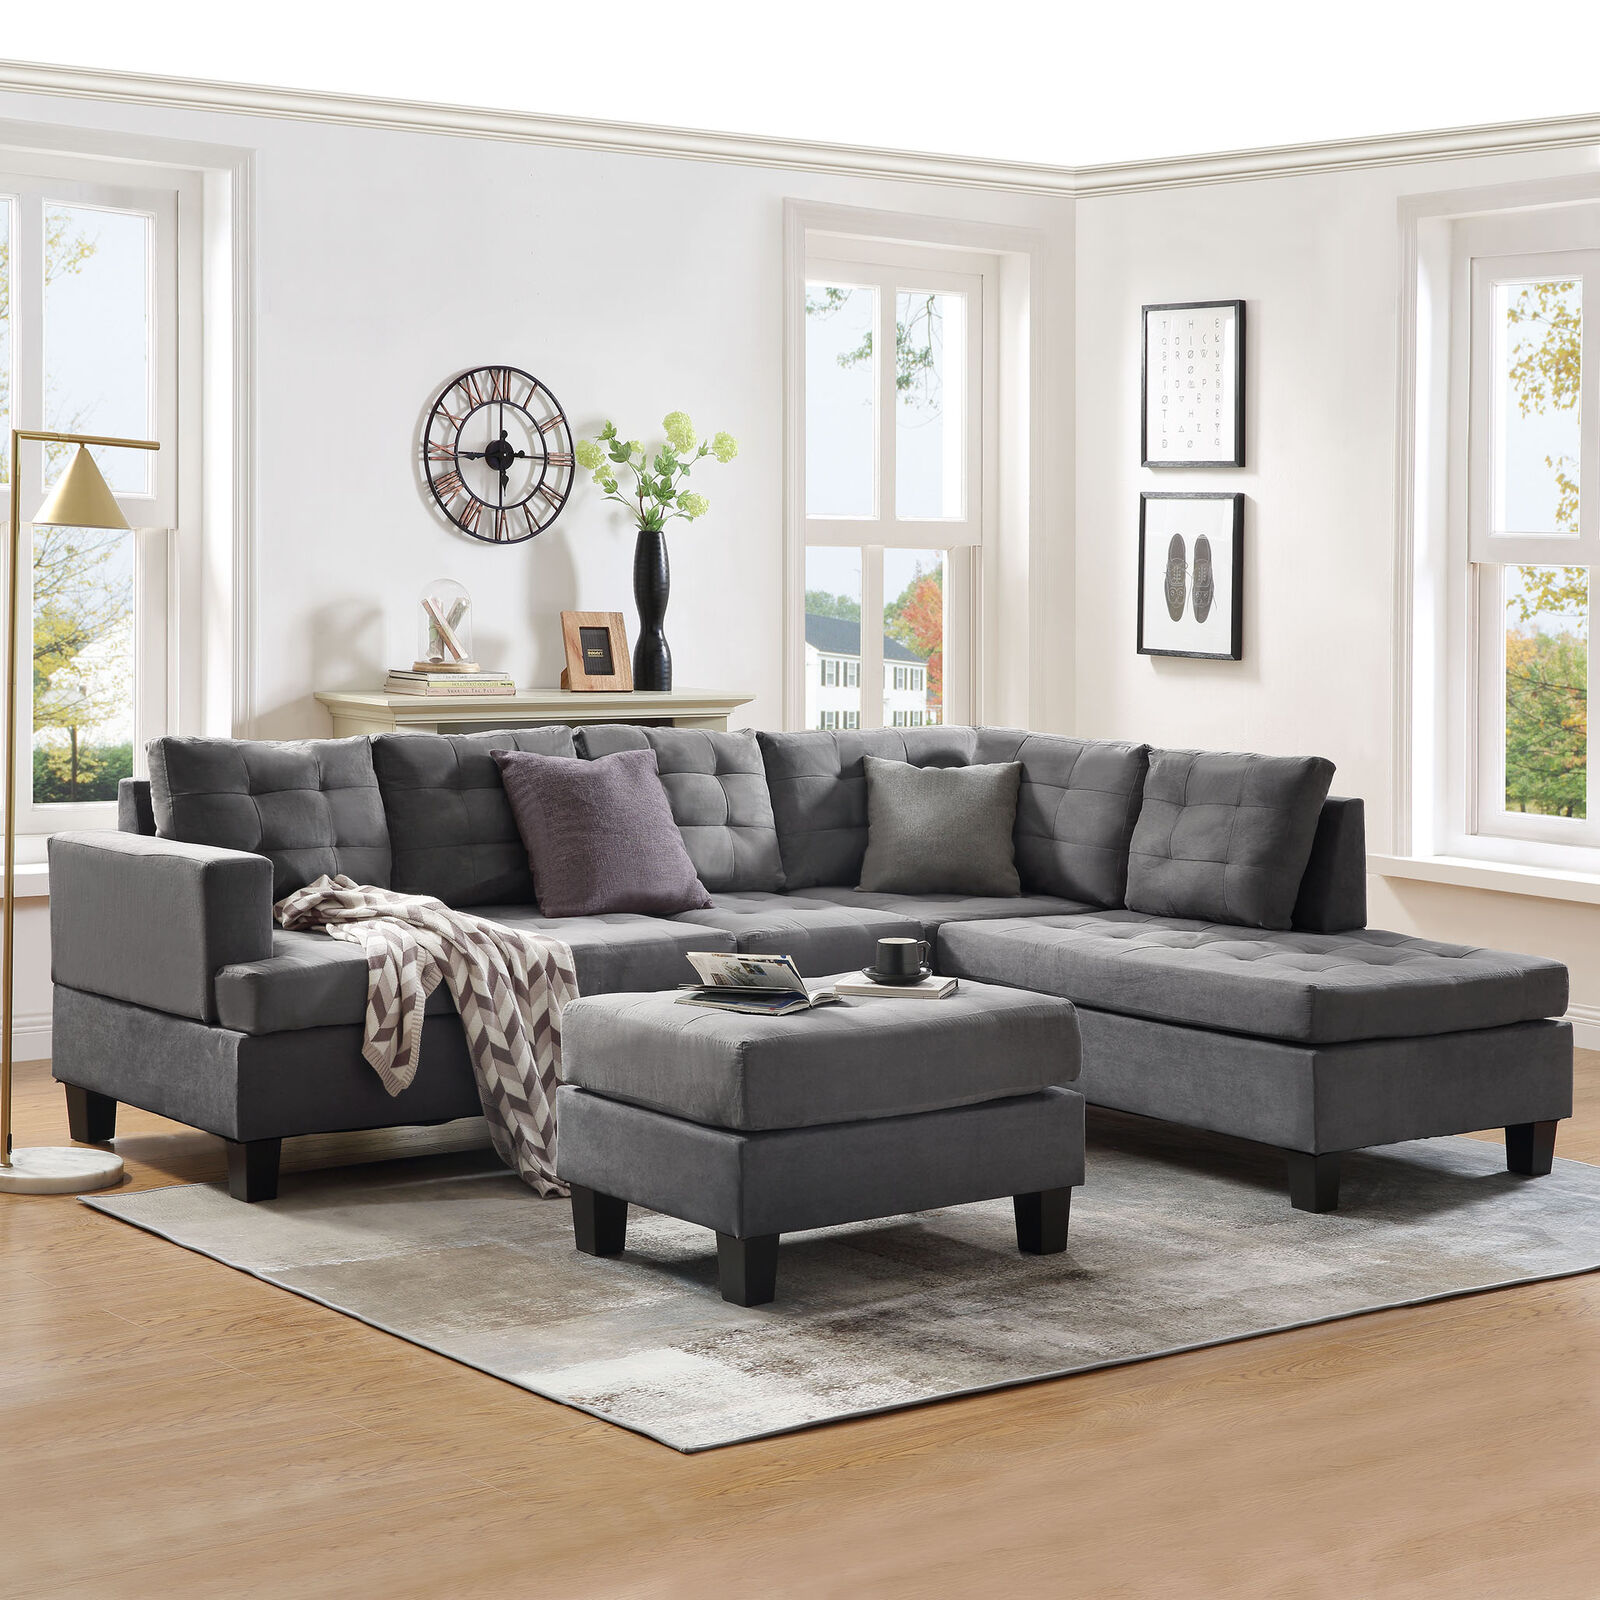 3 Piece Sectional Sofa W Chaise Lounge And Storage Ottoman L Shaped Couch Gray